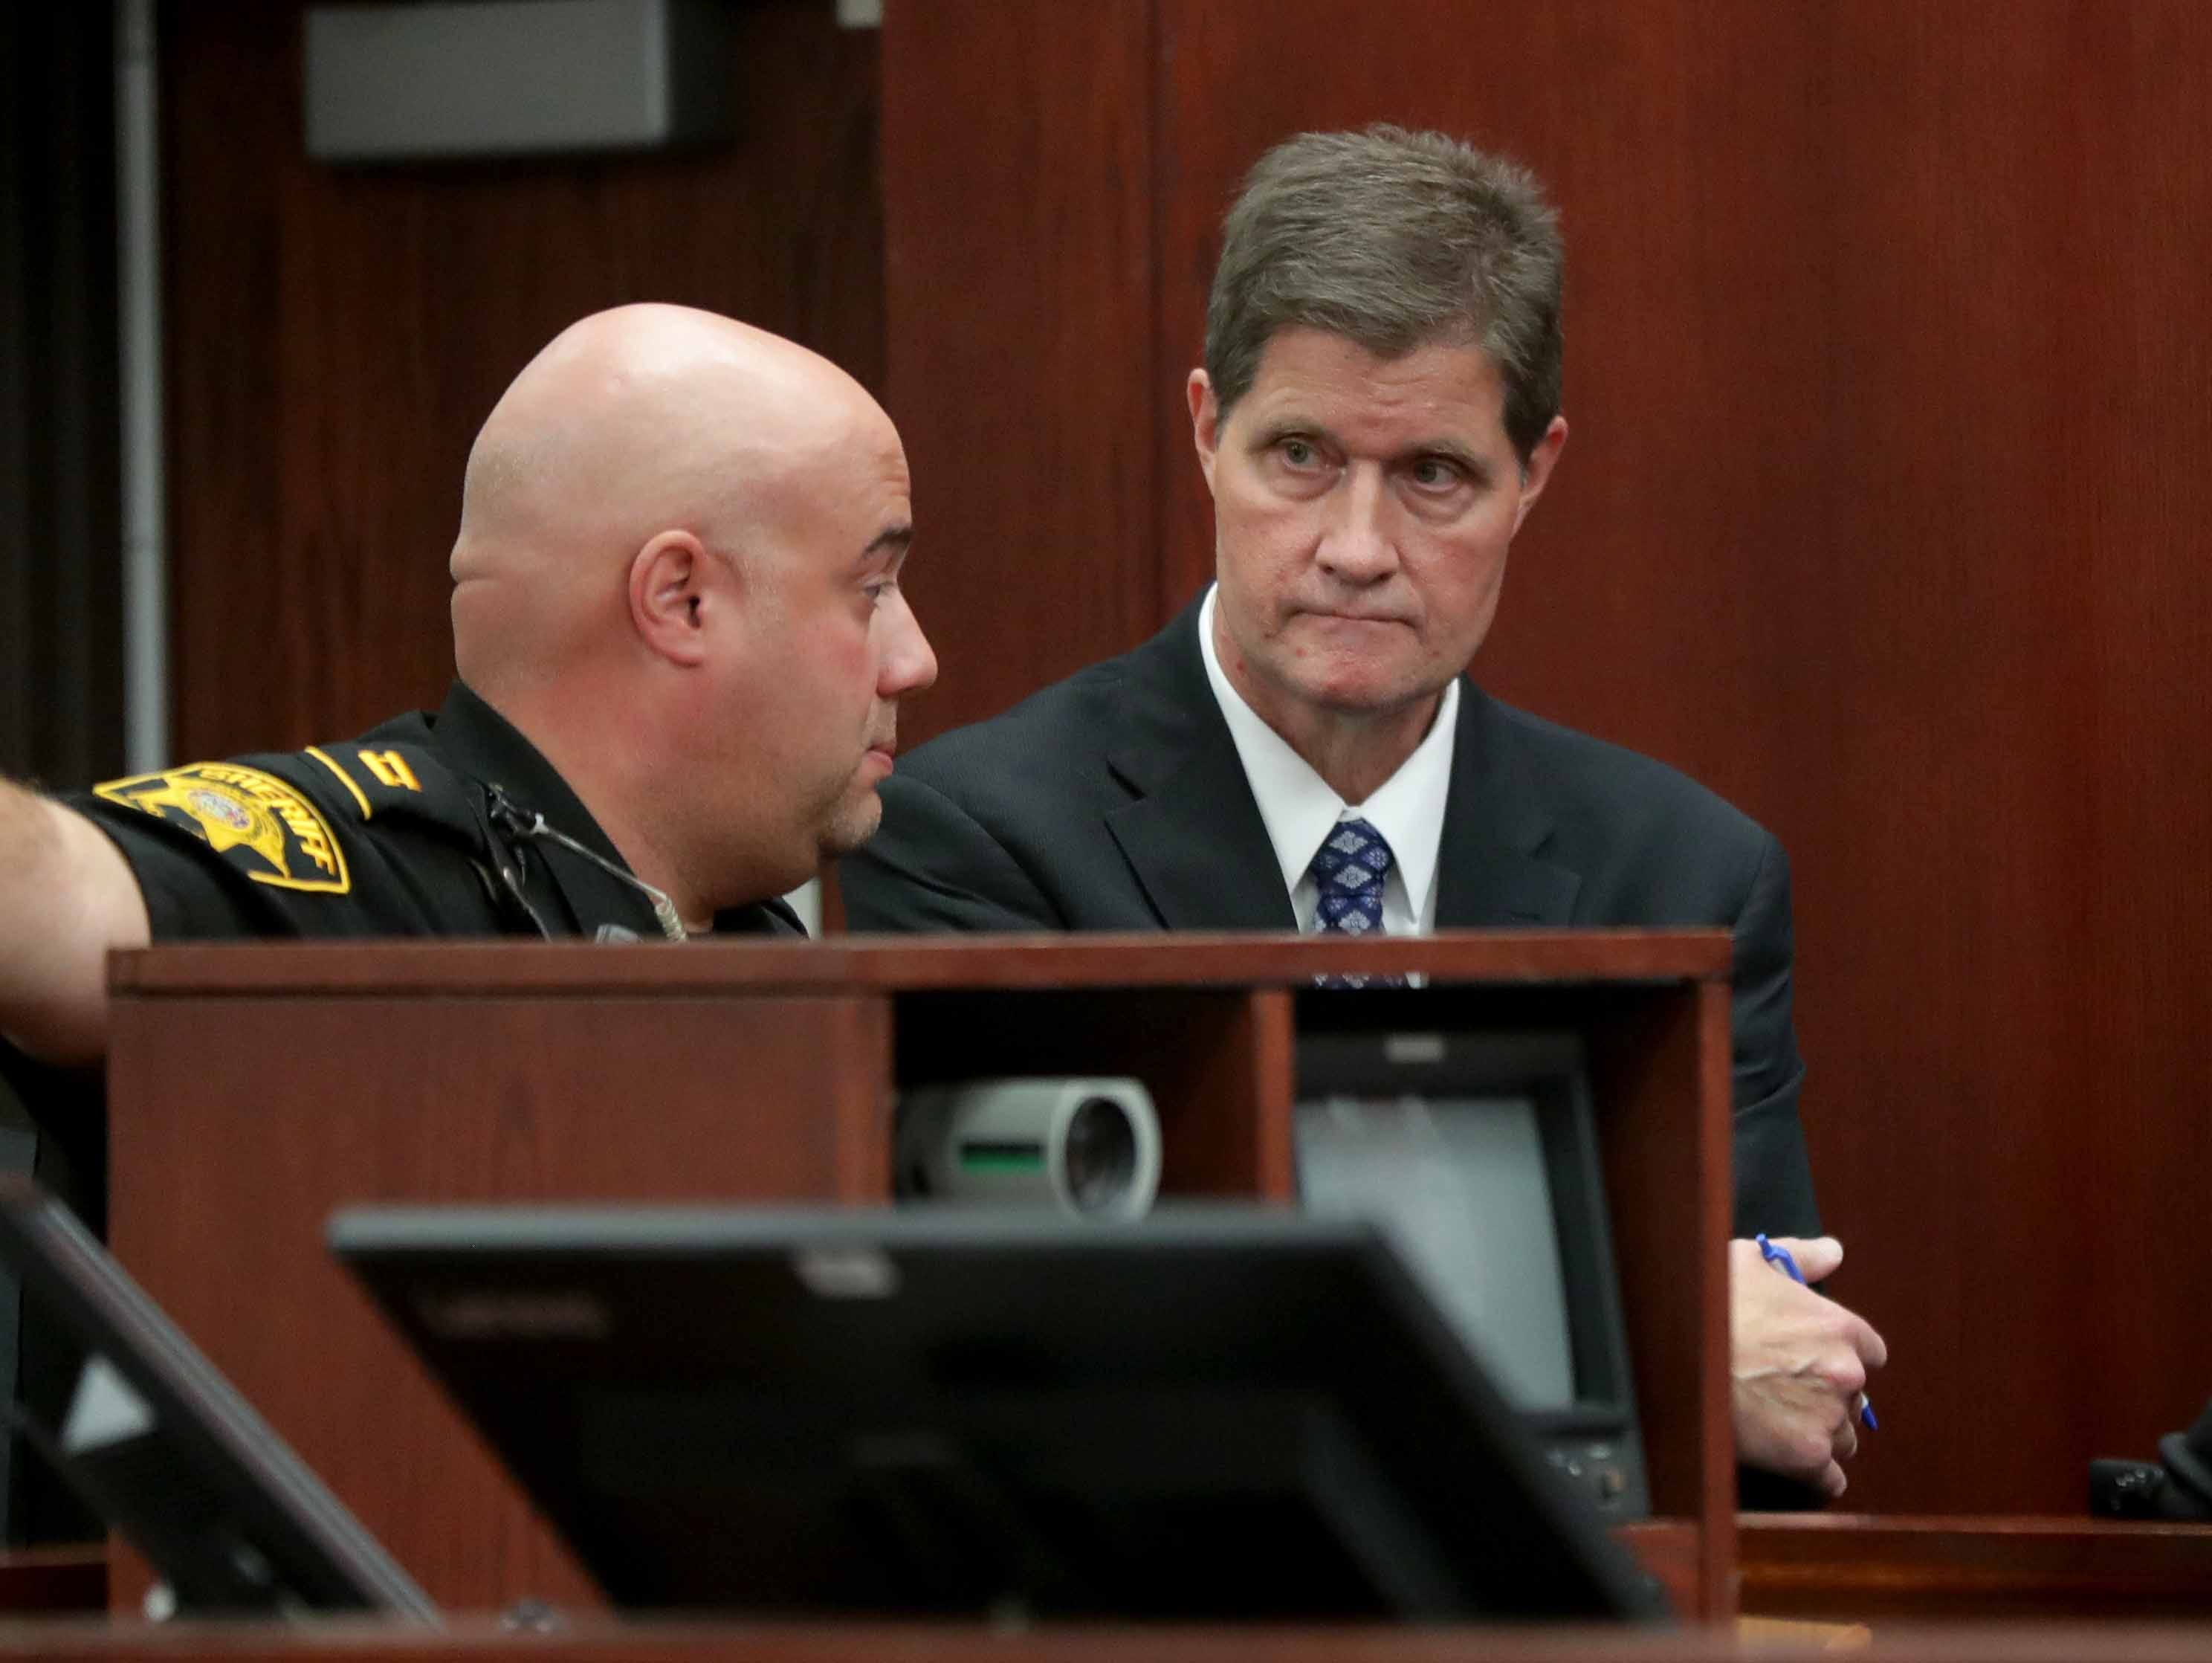 Milwaukee County District AttorneyJohnChisholm appears for the state before the appearance of Jonathan Copeland Jr., 30, who is charged in the fatal shooting of Milwaukee Police Officer Michael Michalski.